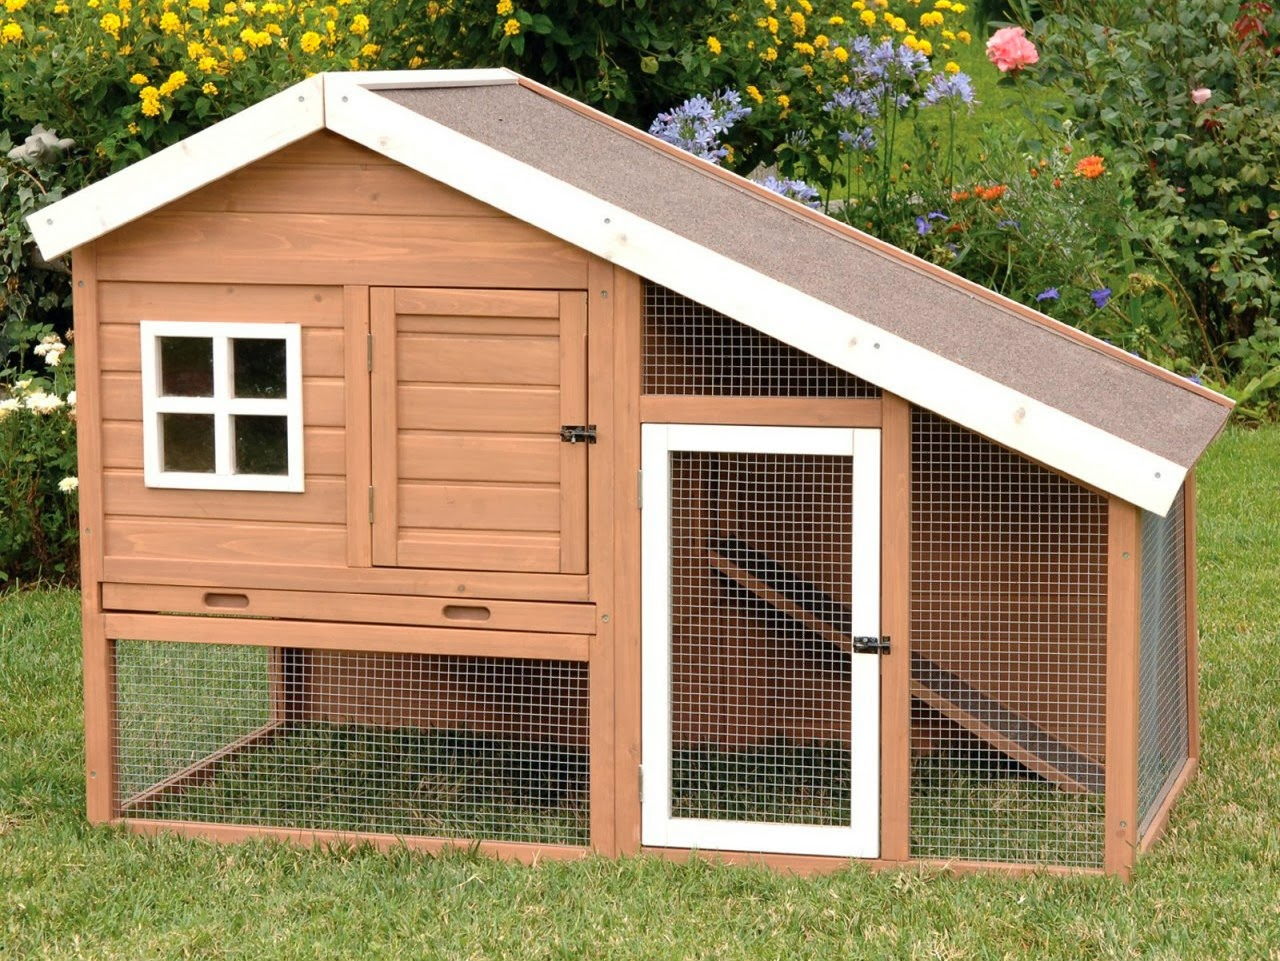 Chicken house plans chicken house designs Small chic house plans